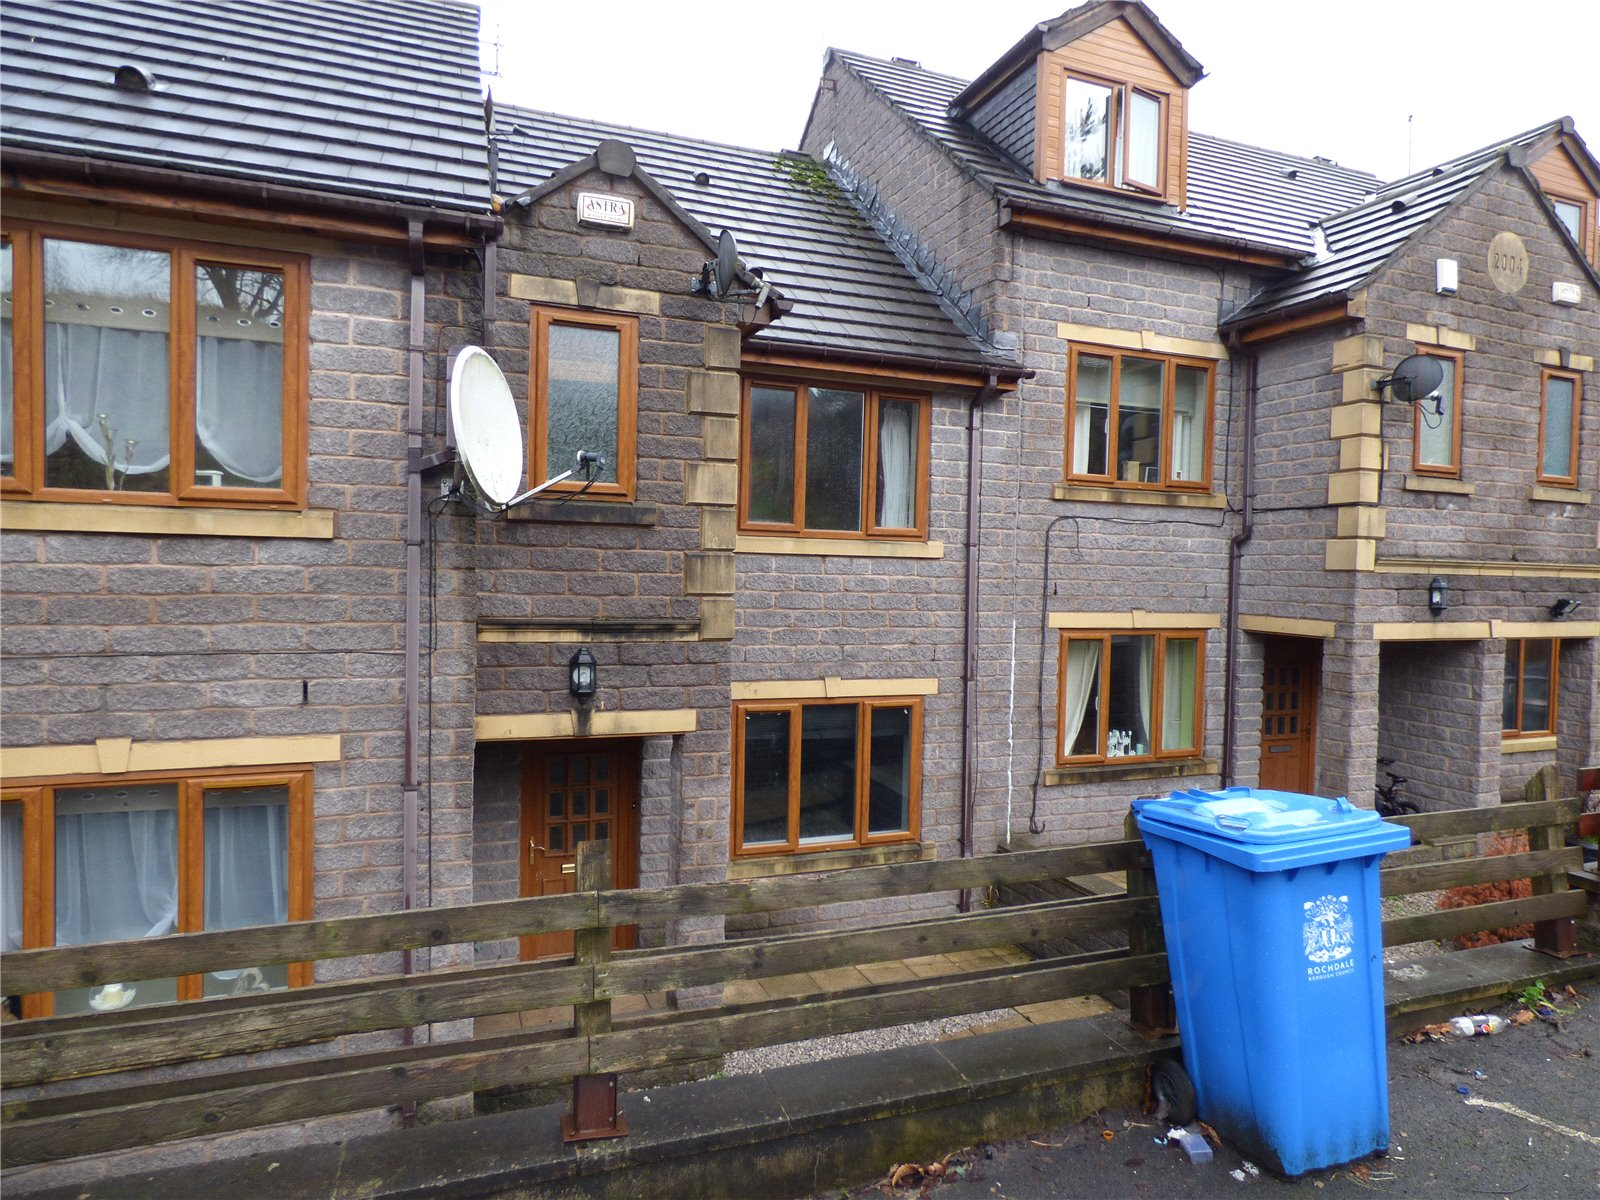 3 Bedrooms Terraced House for sale in Newbold Street, Rochdale, Greater Manchester, OL16